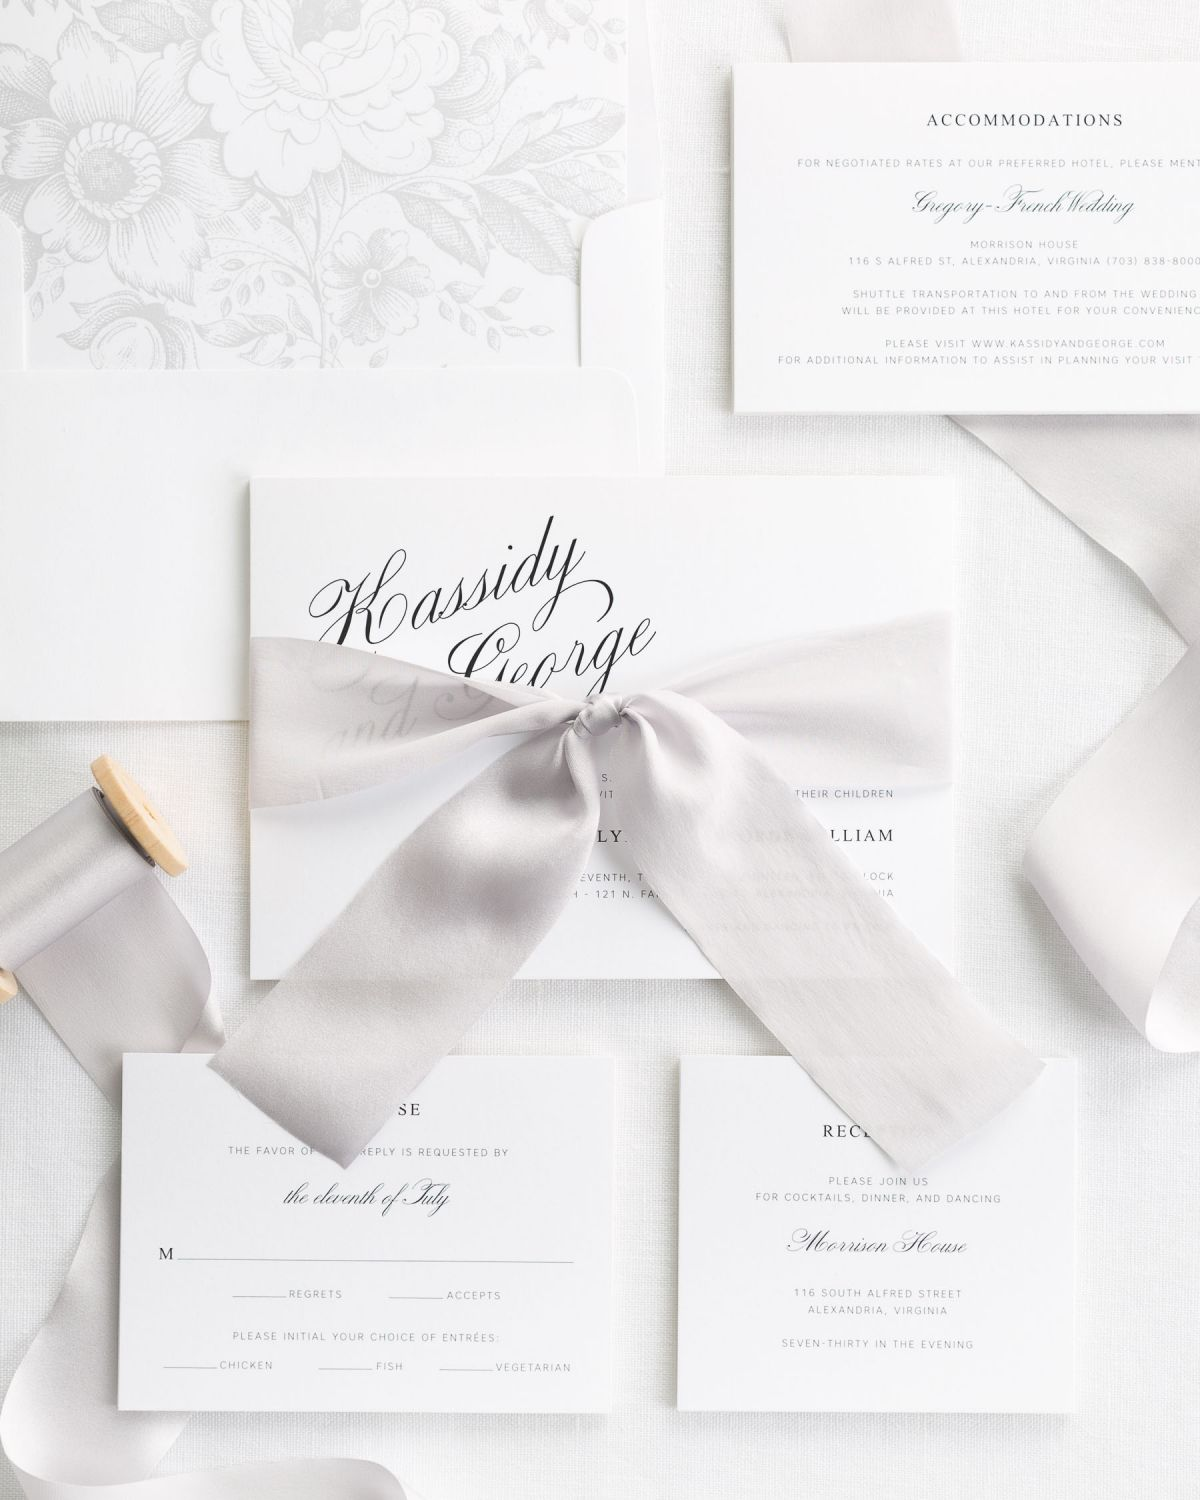 Complete Wedding Invitaiton Set with Mocha Ribbon and Enclosures